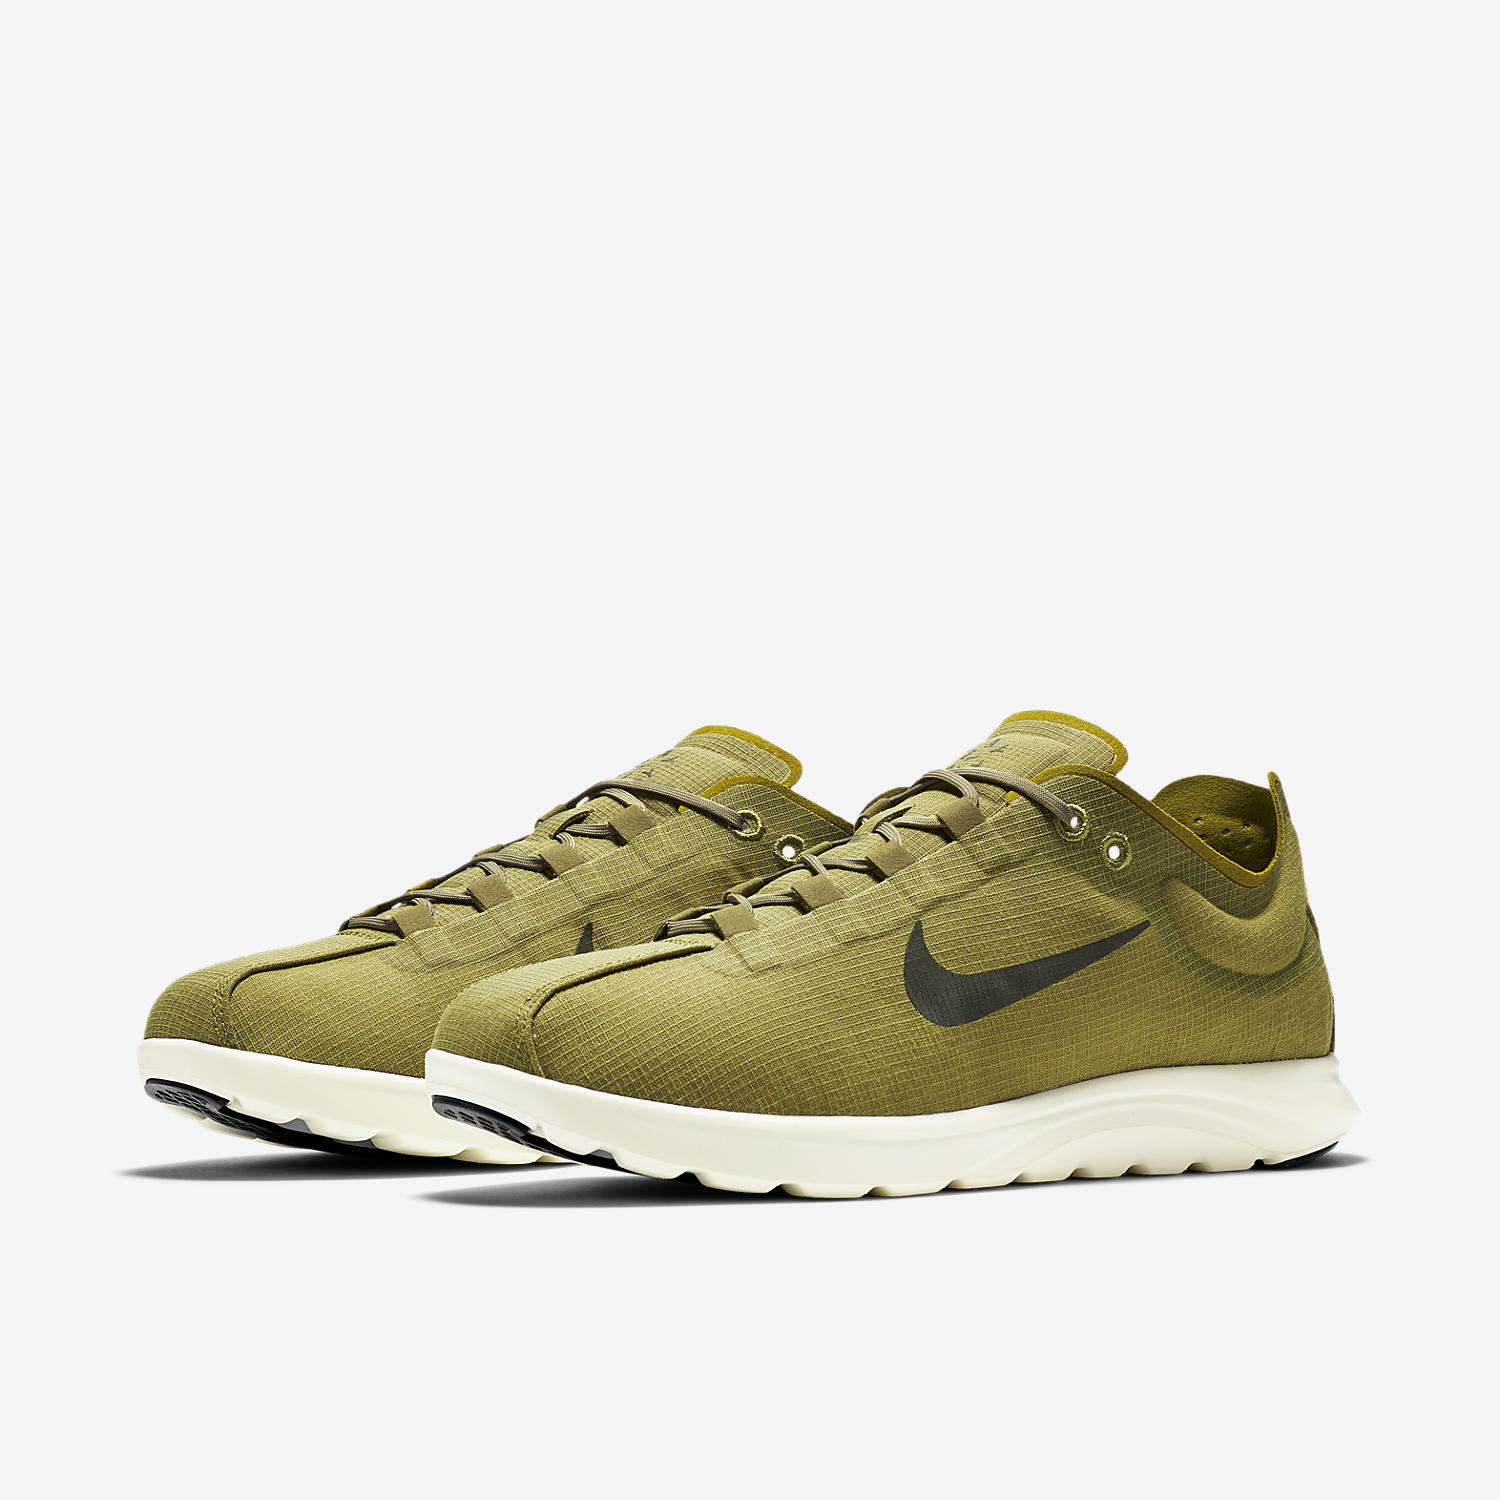 NIKE NIKELAB MAYFLY LITE MEN'S SHOES SZ US 10.5 GREEN 909555-301